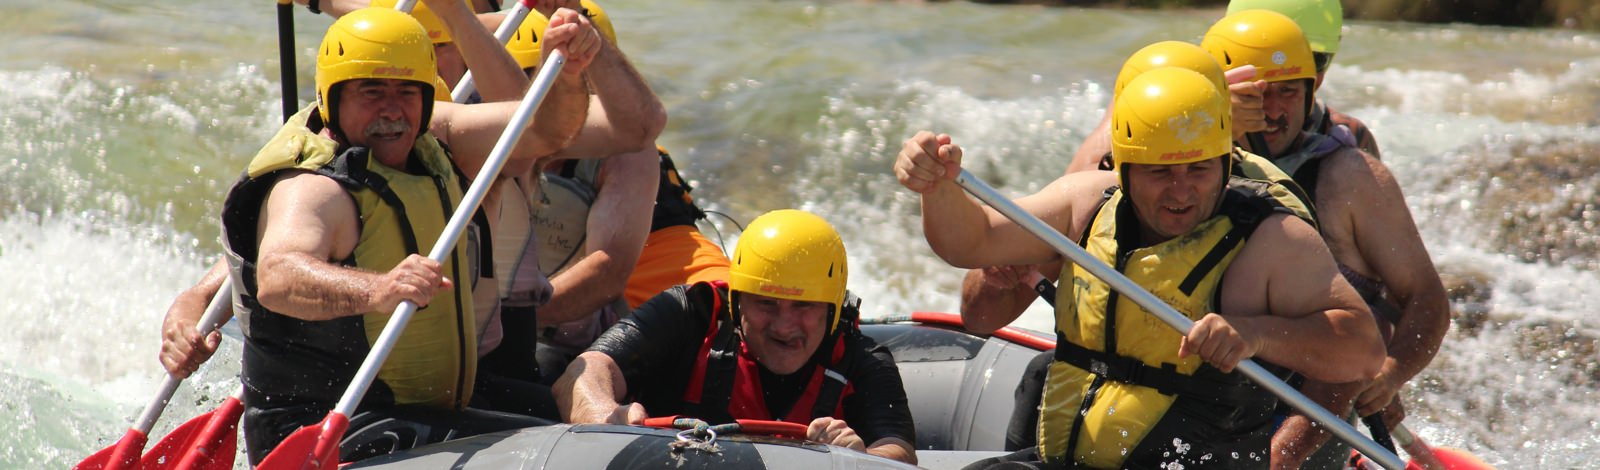 Rafting E.Bayer Bad-Tölz